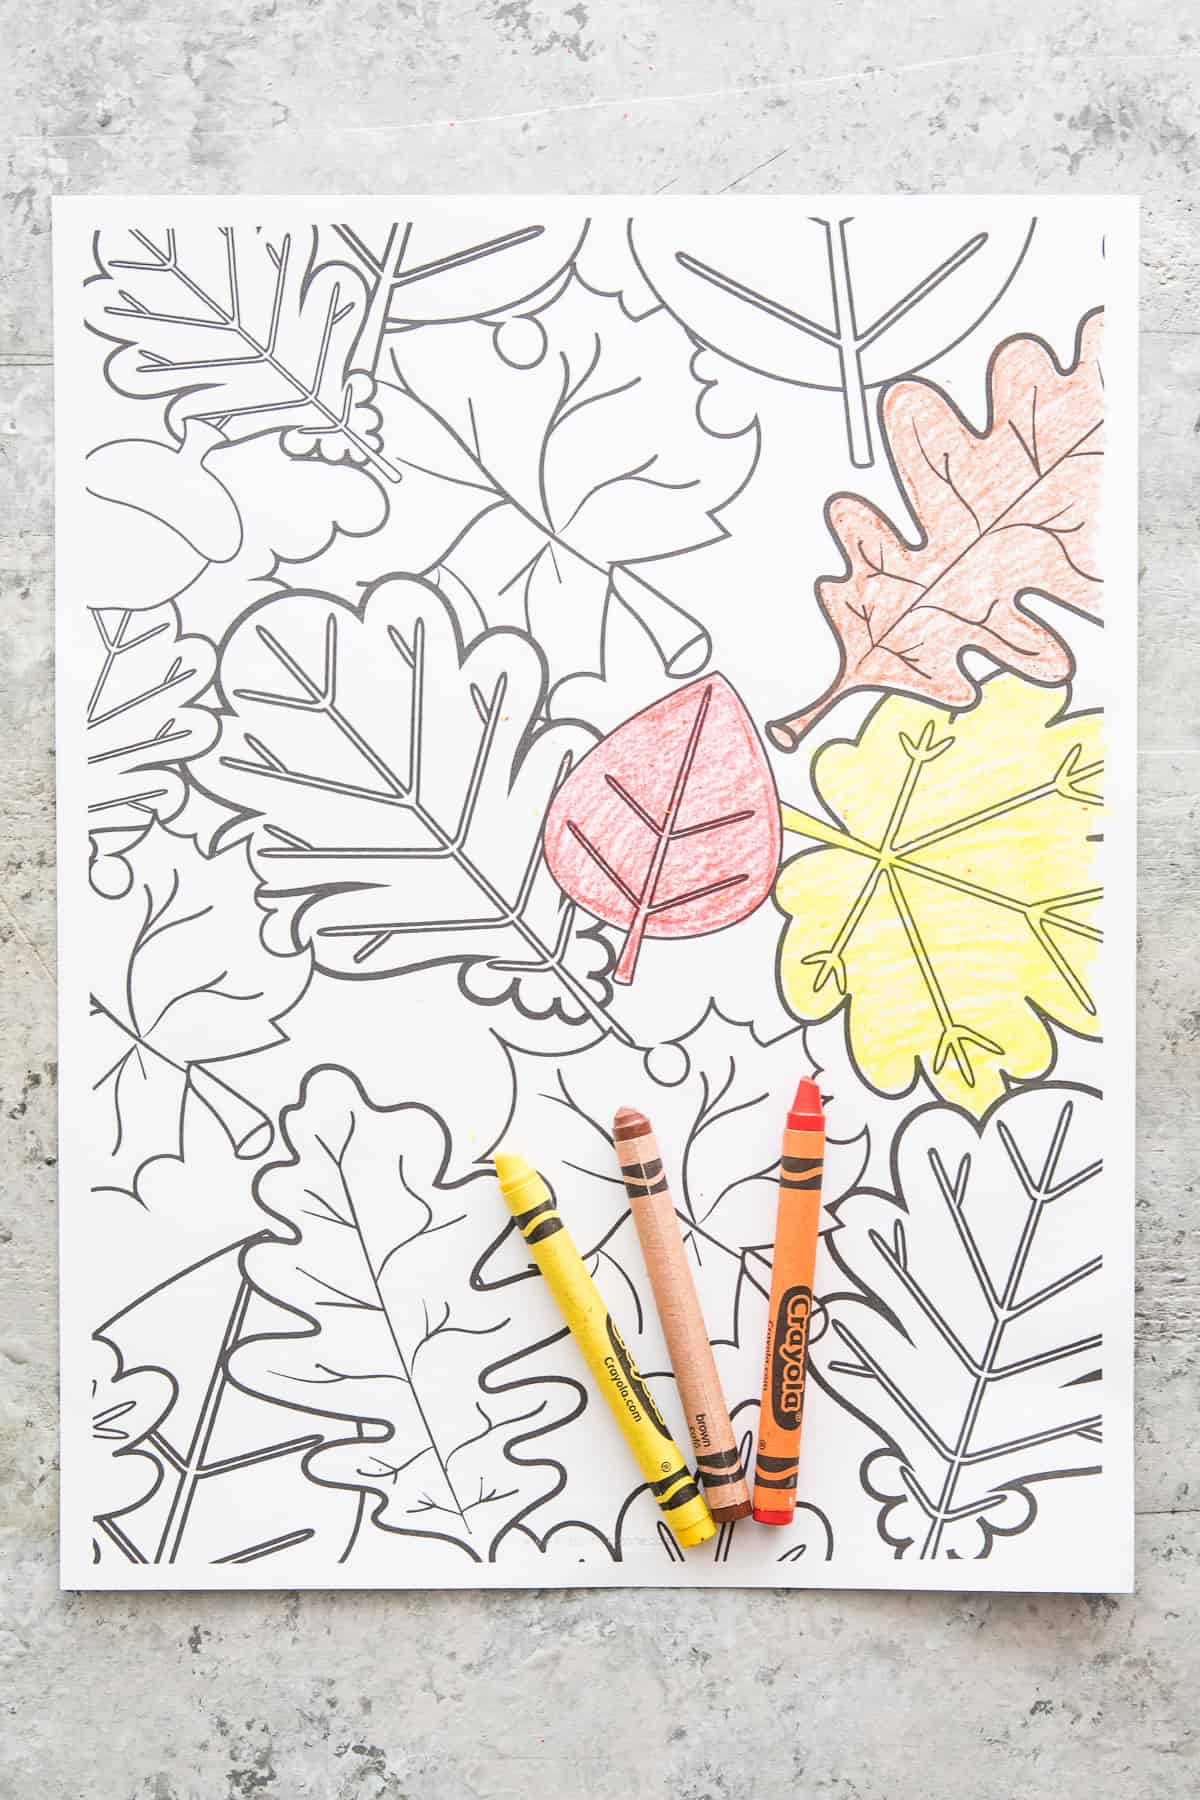 Leaf Collage Coloring Page Printout with crayons